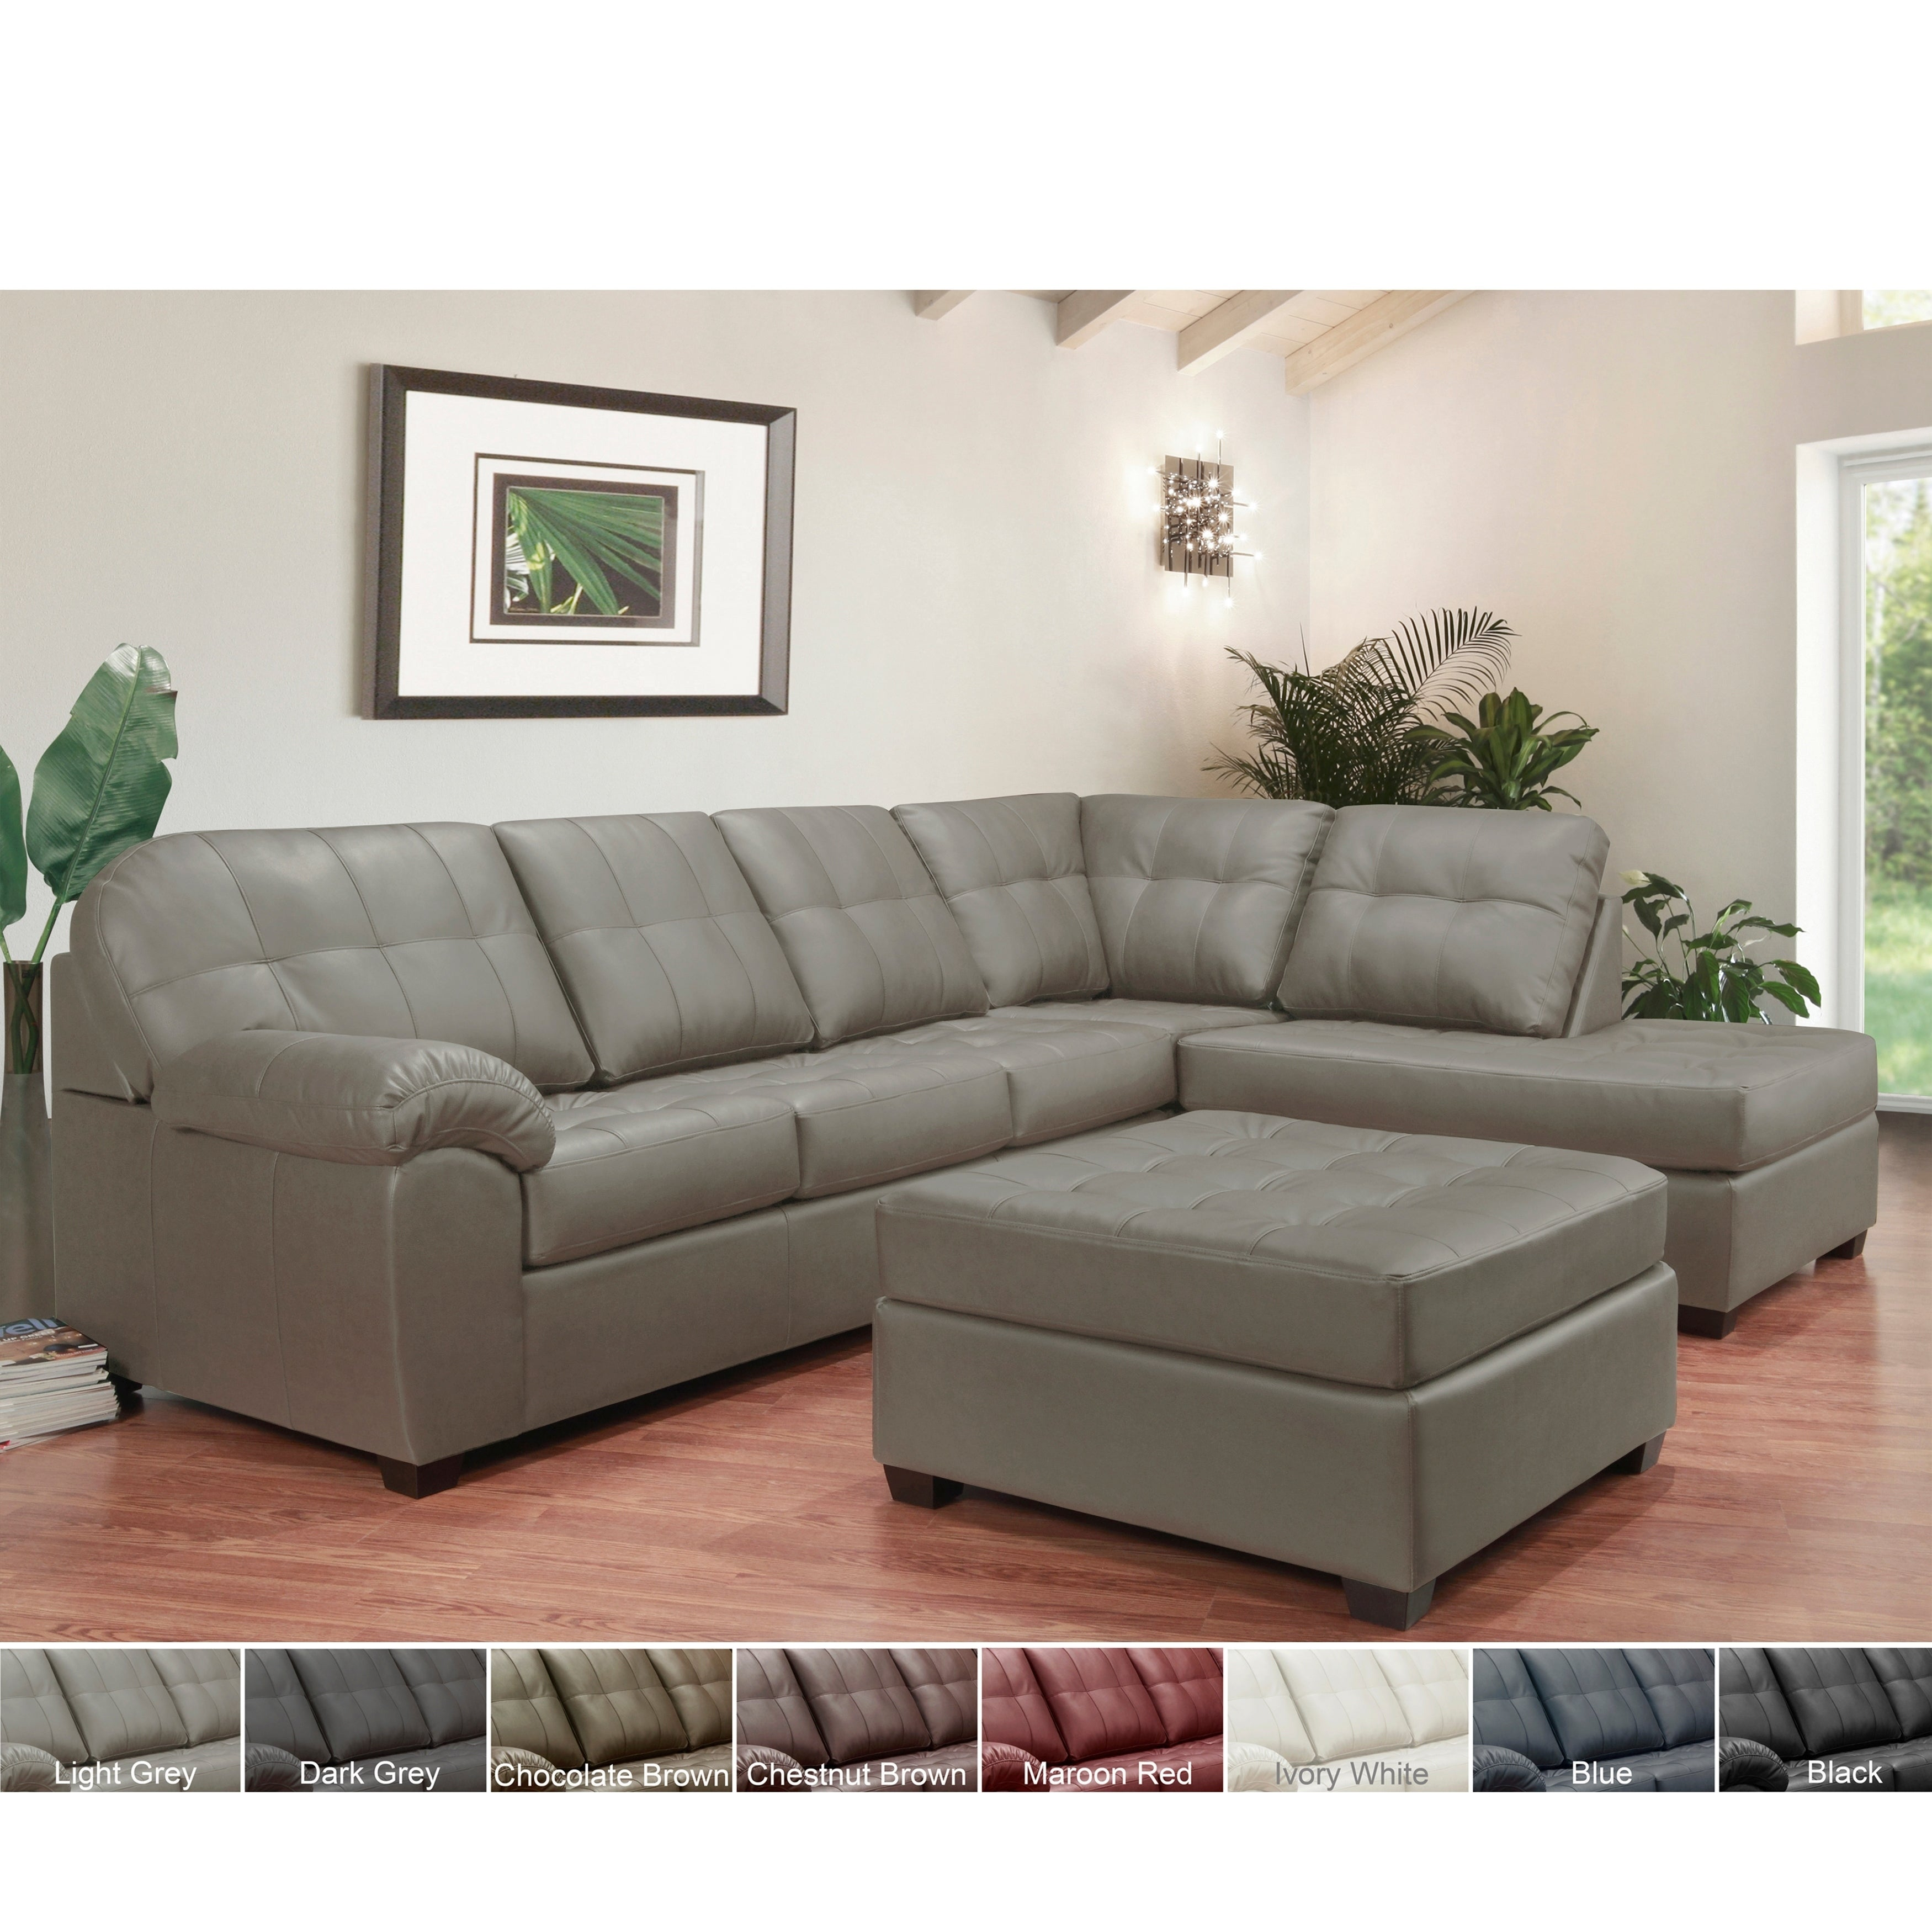 Shop emerson top grain leather tufted sectional sofa and ottoman free shipping today overstock com 23572830